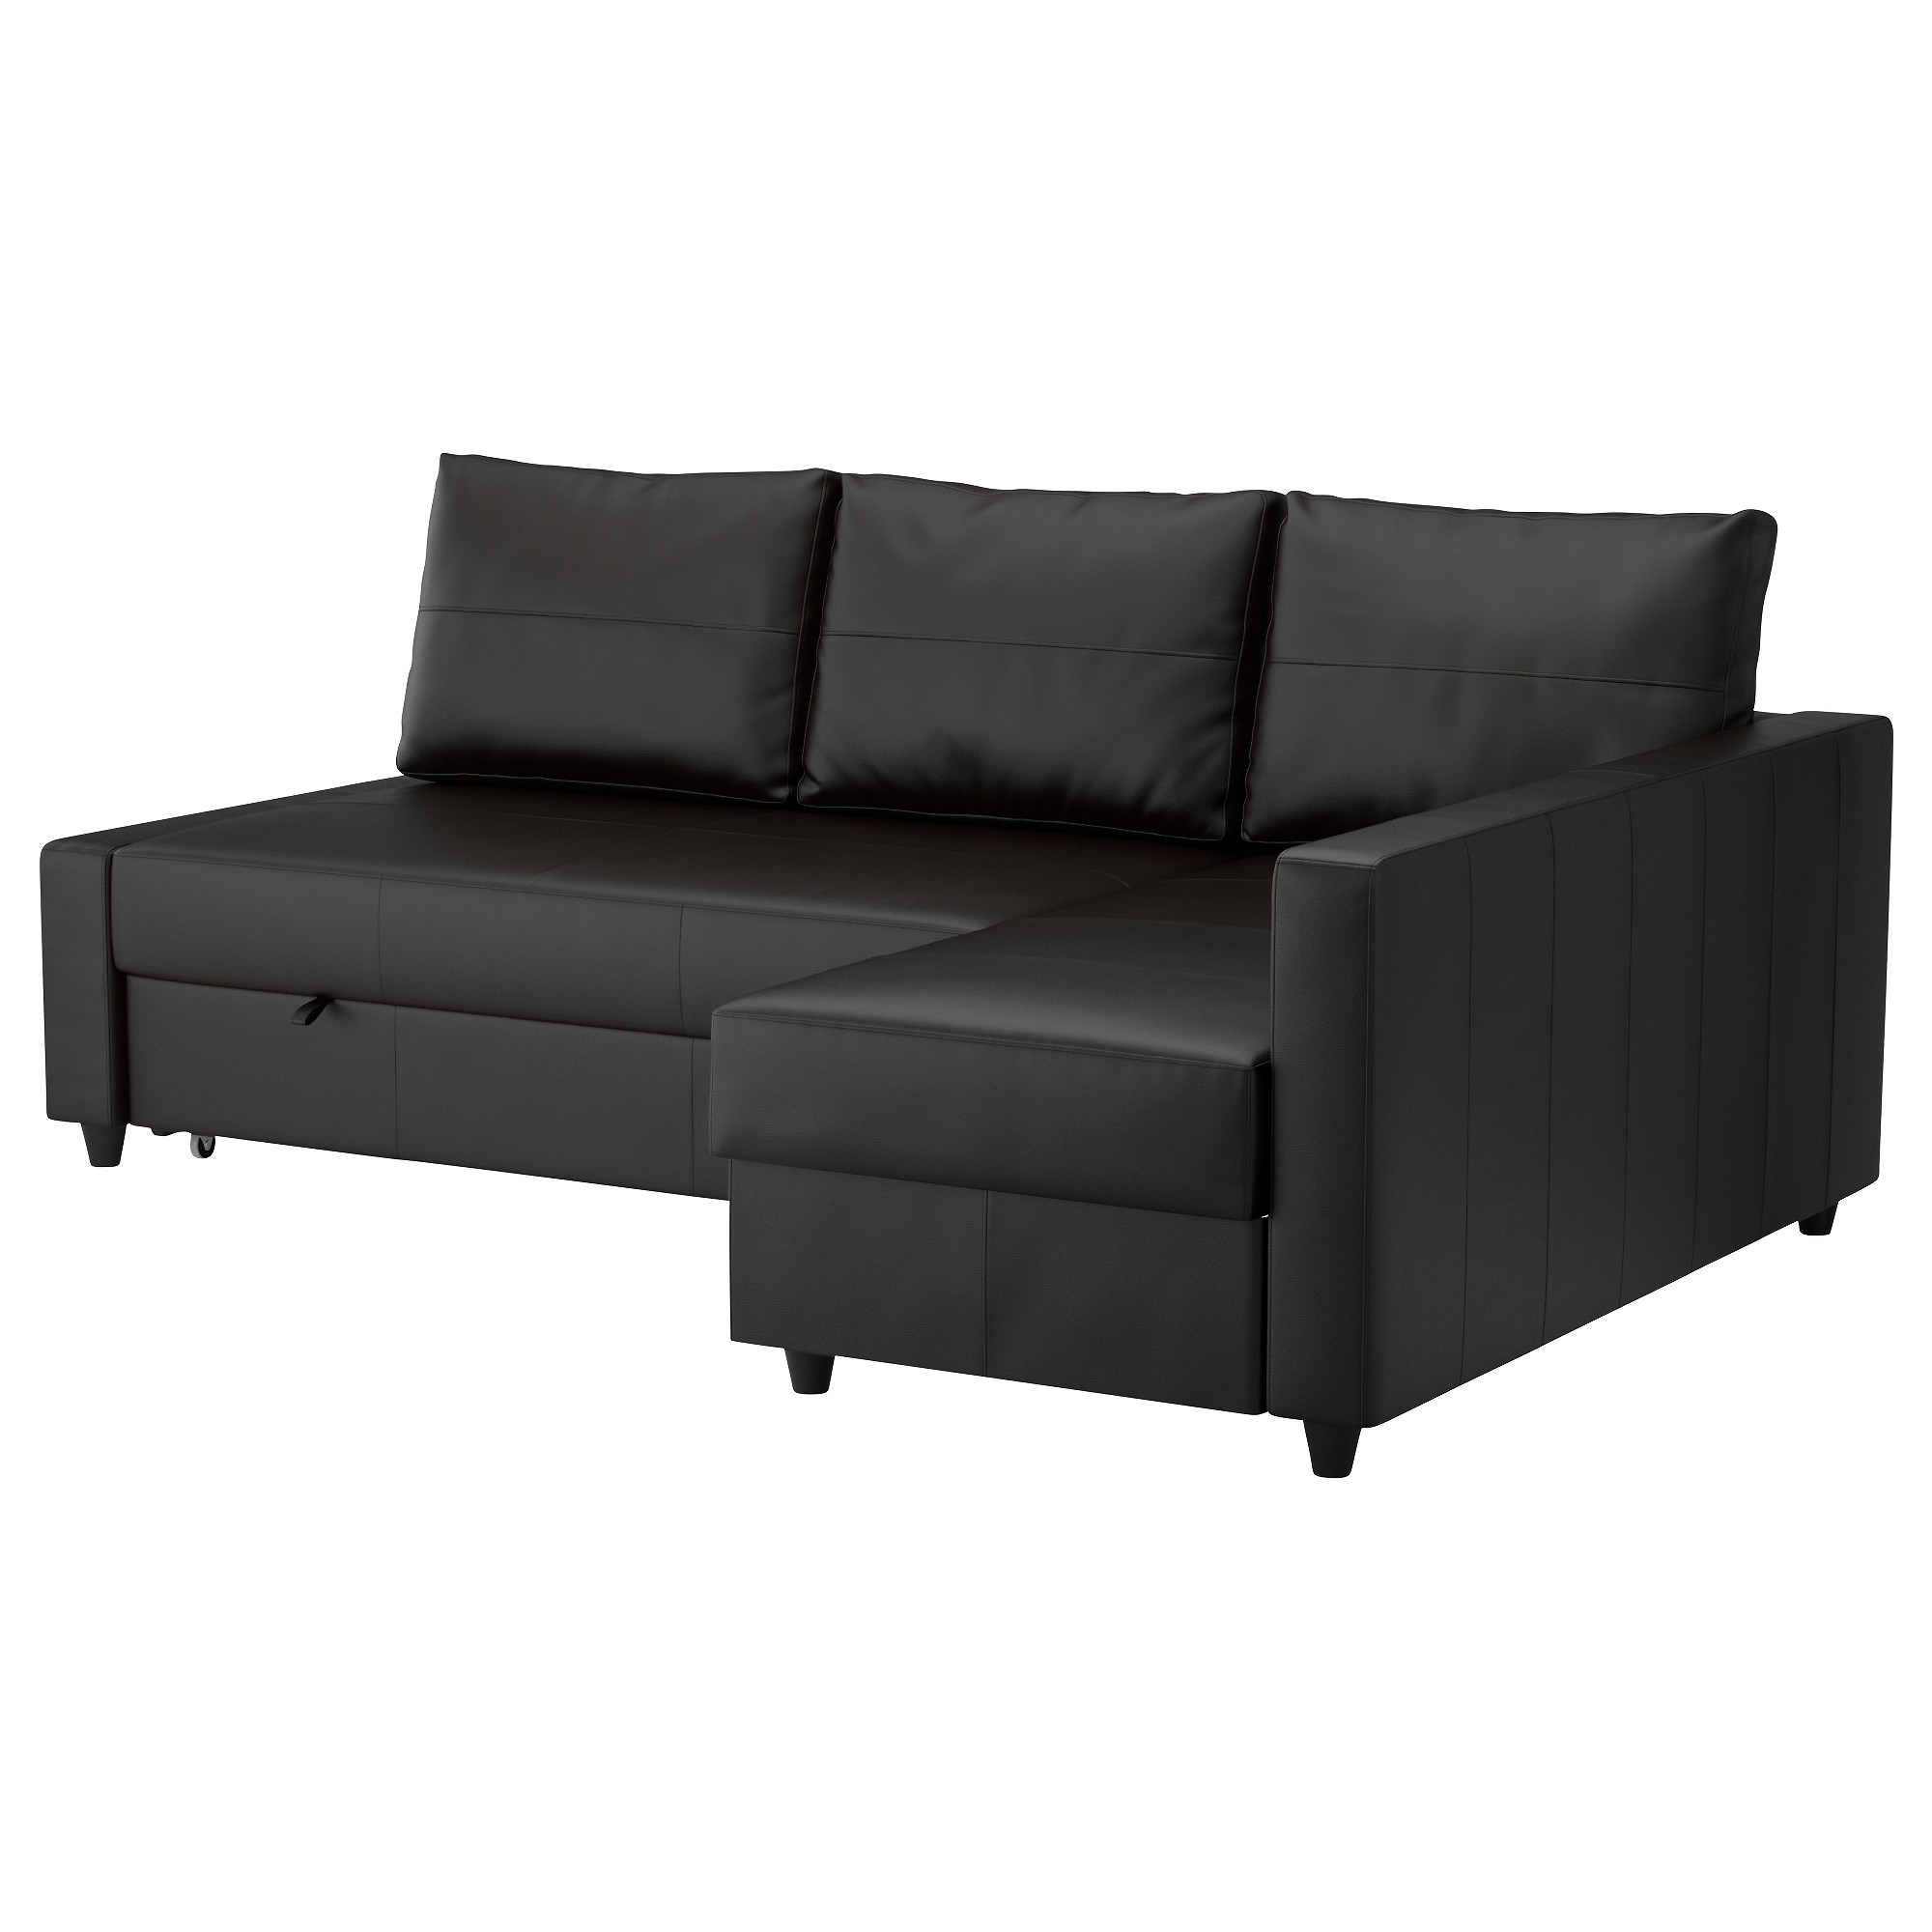 friheten corner sofa bed with storage bomstad black ikea rh ikea com corner sofa bed with storage john lewis corner sofa-bed with storage friheten review